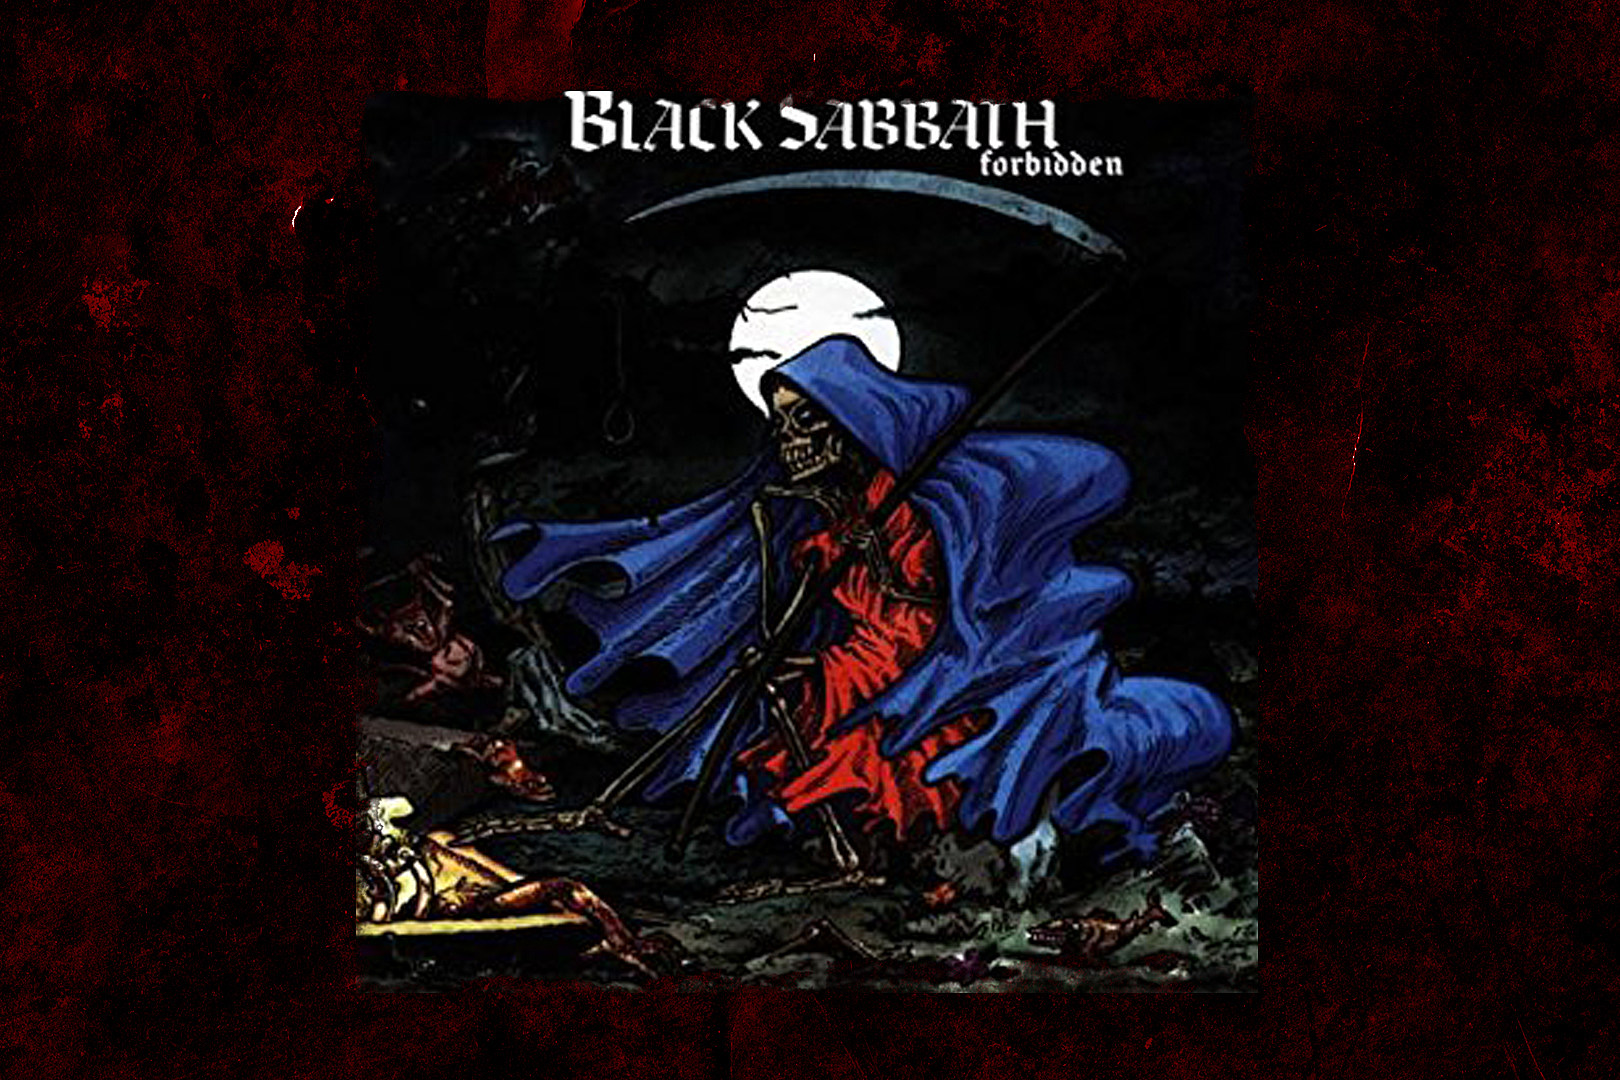 25 Years Ago: Black Sabbath Release 'Forbidden'